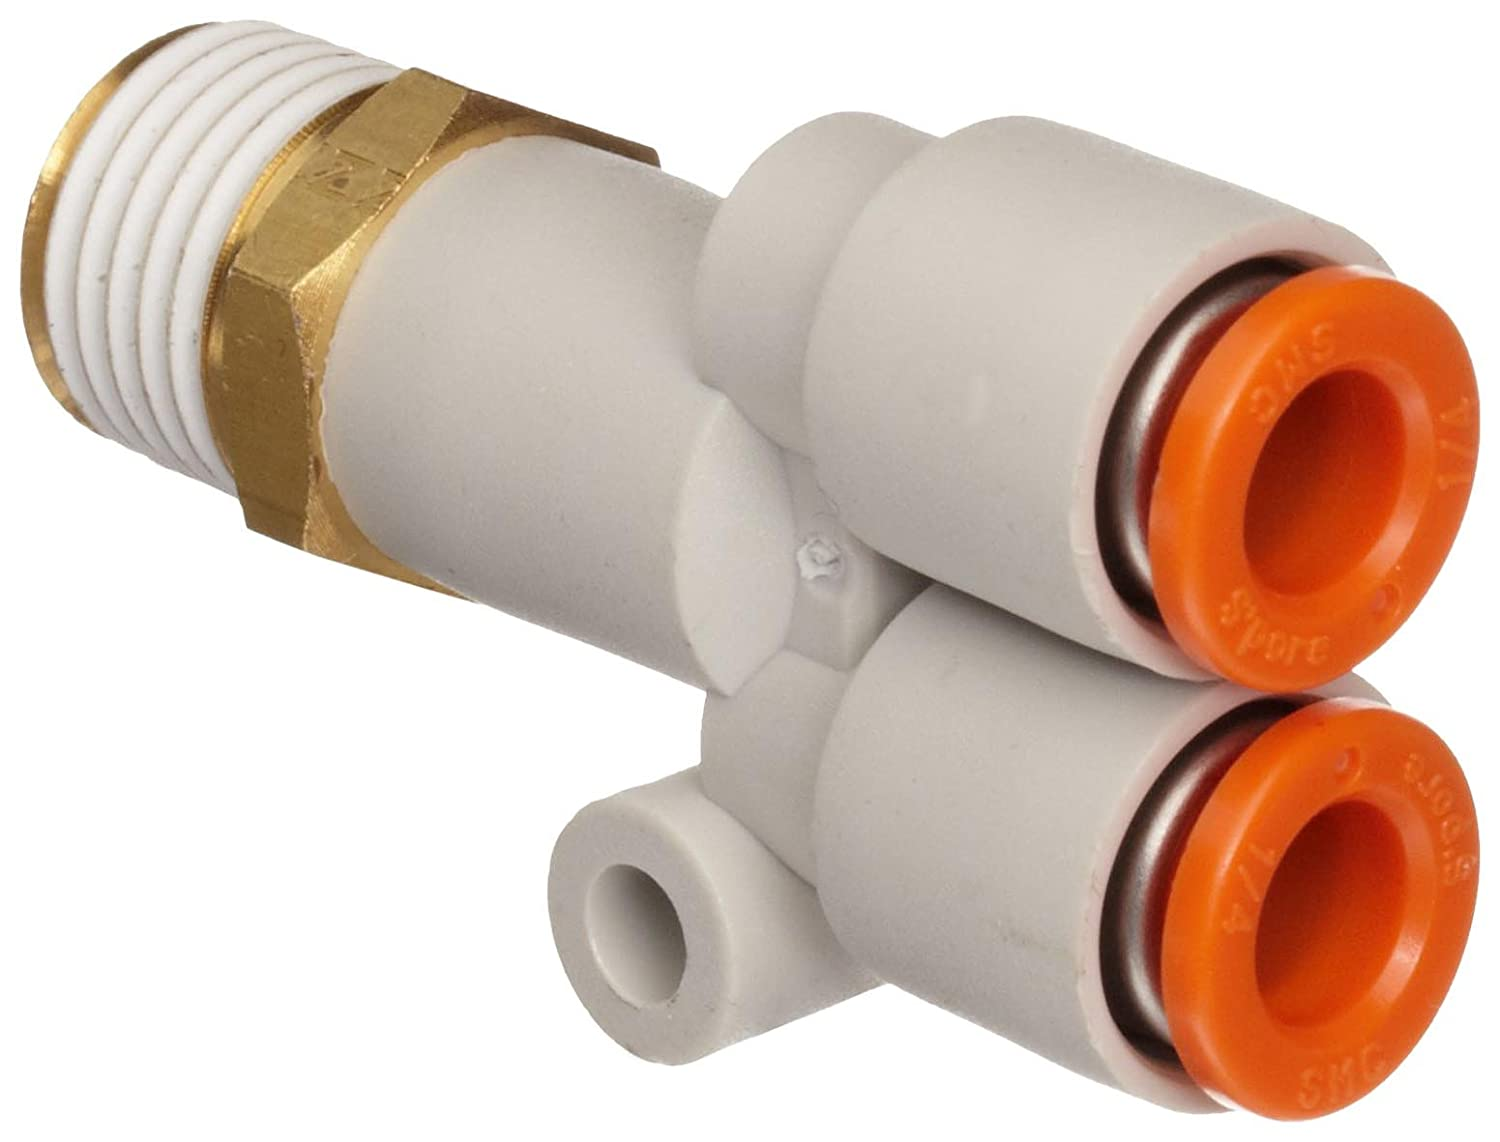 SMC KQ2U07-35AS PBT /& Brass Push-to-Connect Tube Fitting with Sealant 1//4 Tube OD x 1//4 NPT Male Branch Wye